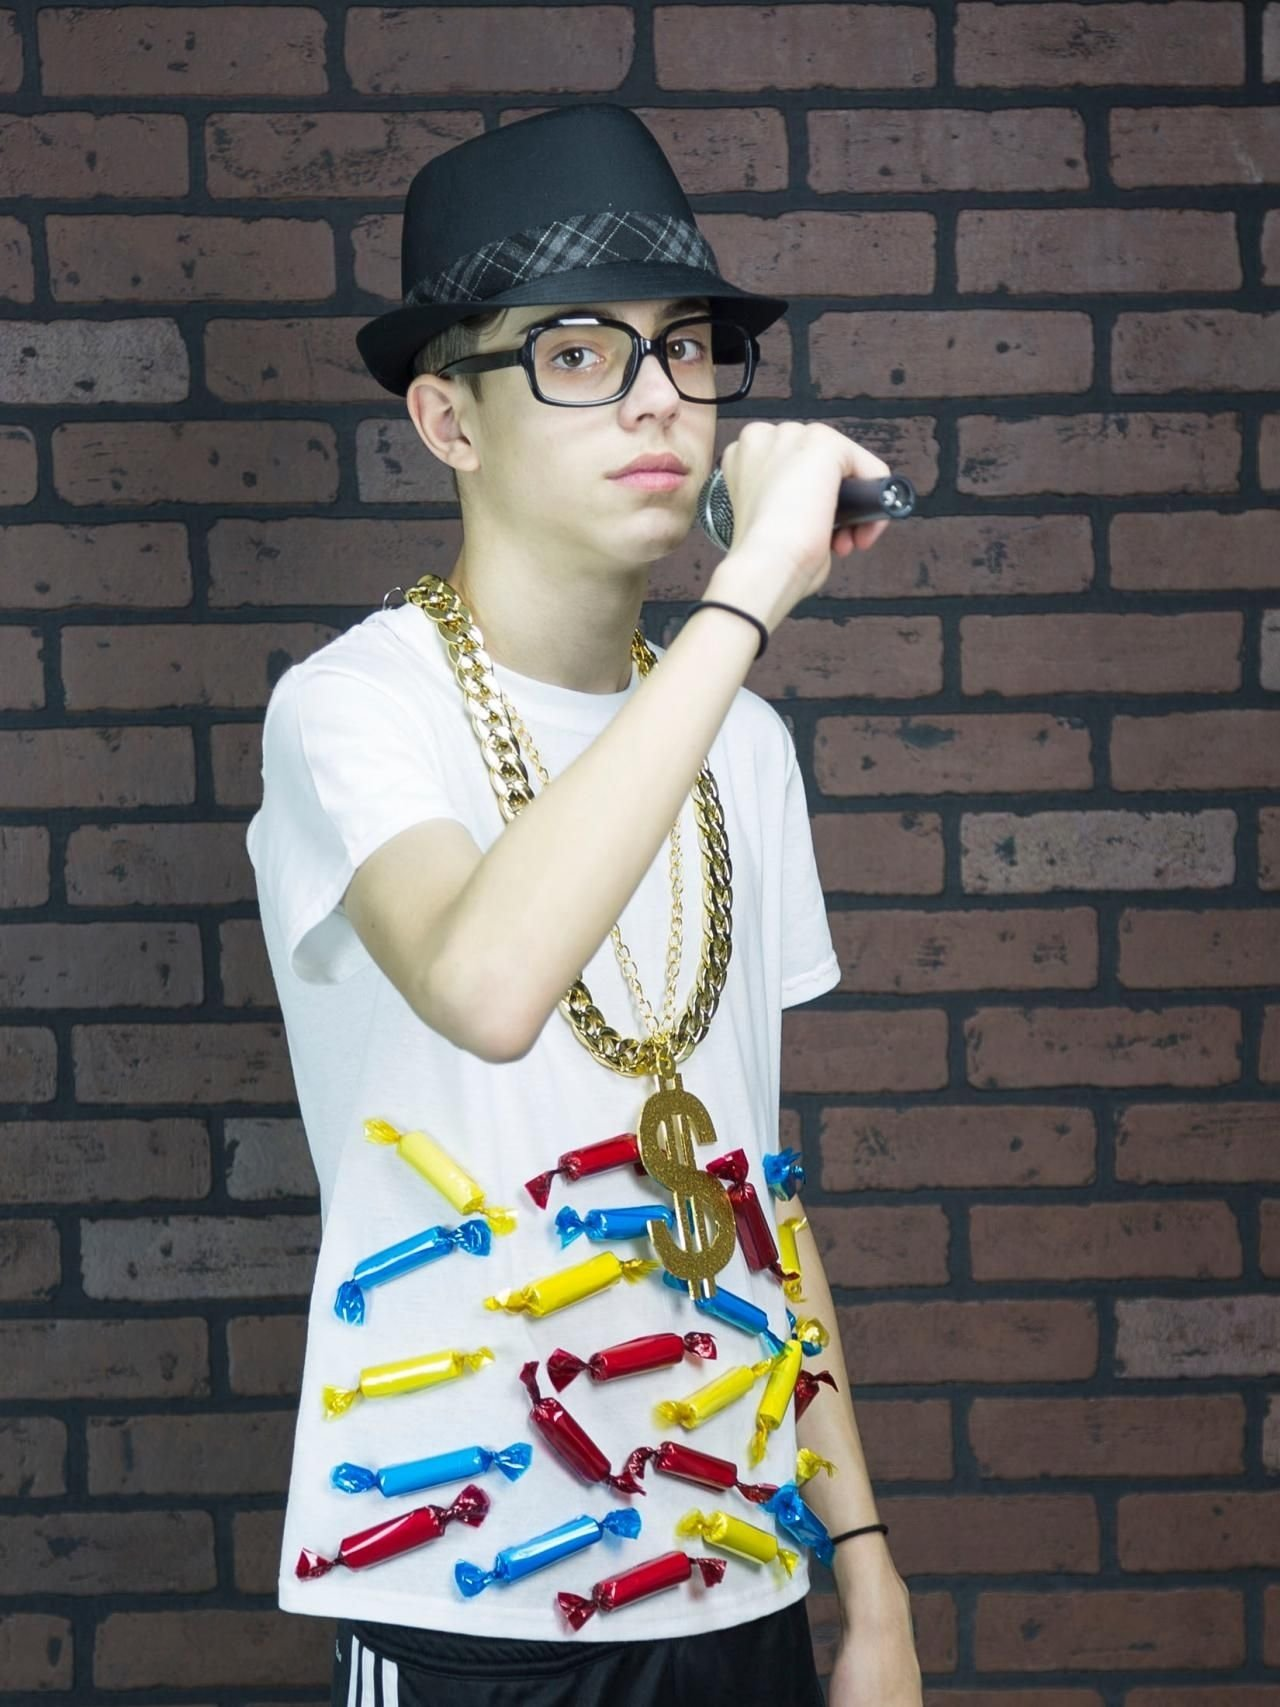 10 Lovable Creative Halloween Costume Ideas For Kids easy budget halloween costume hip hop candy rapper easy budget 8 2020